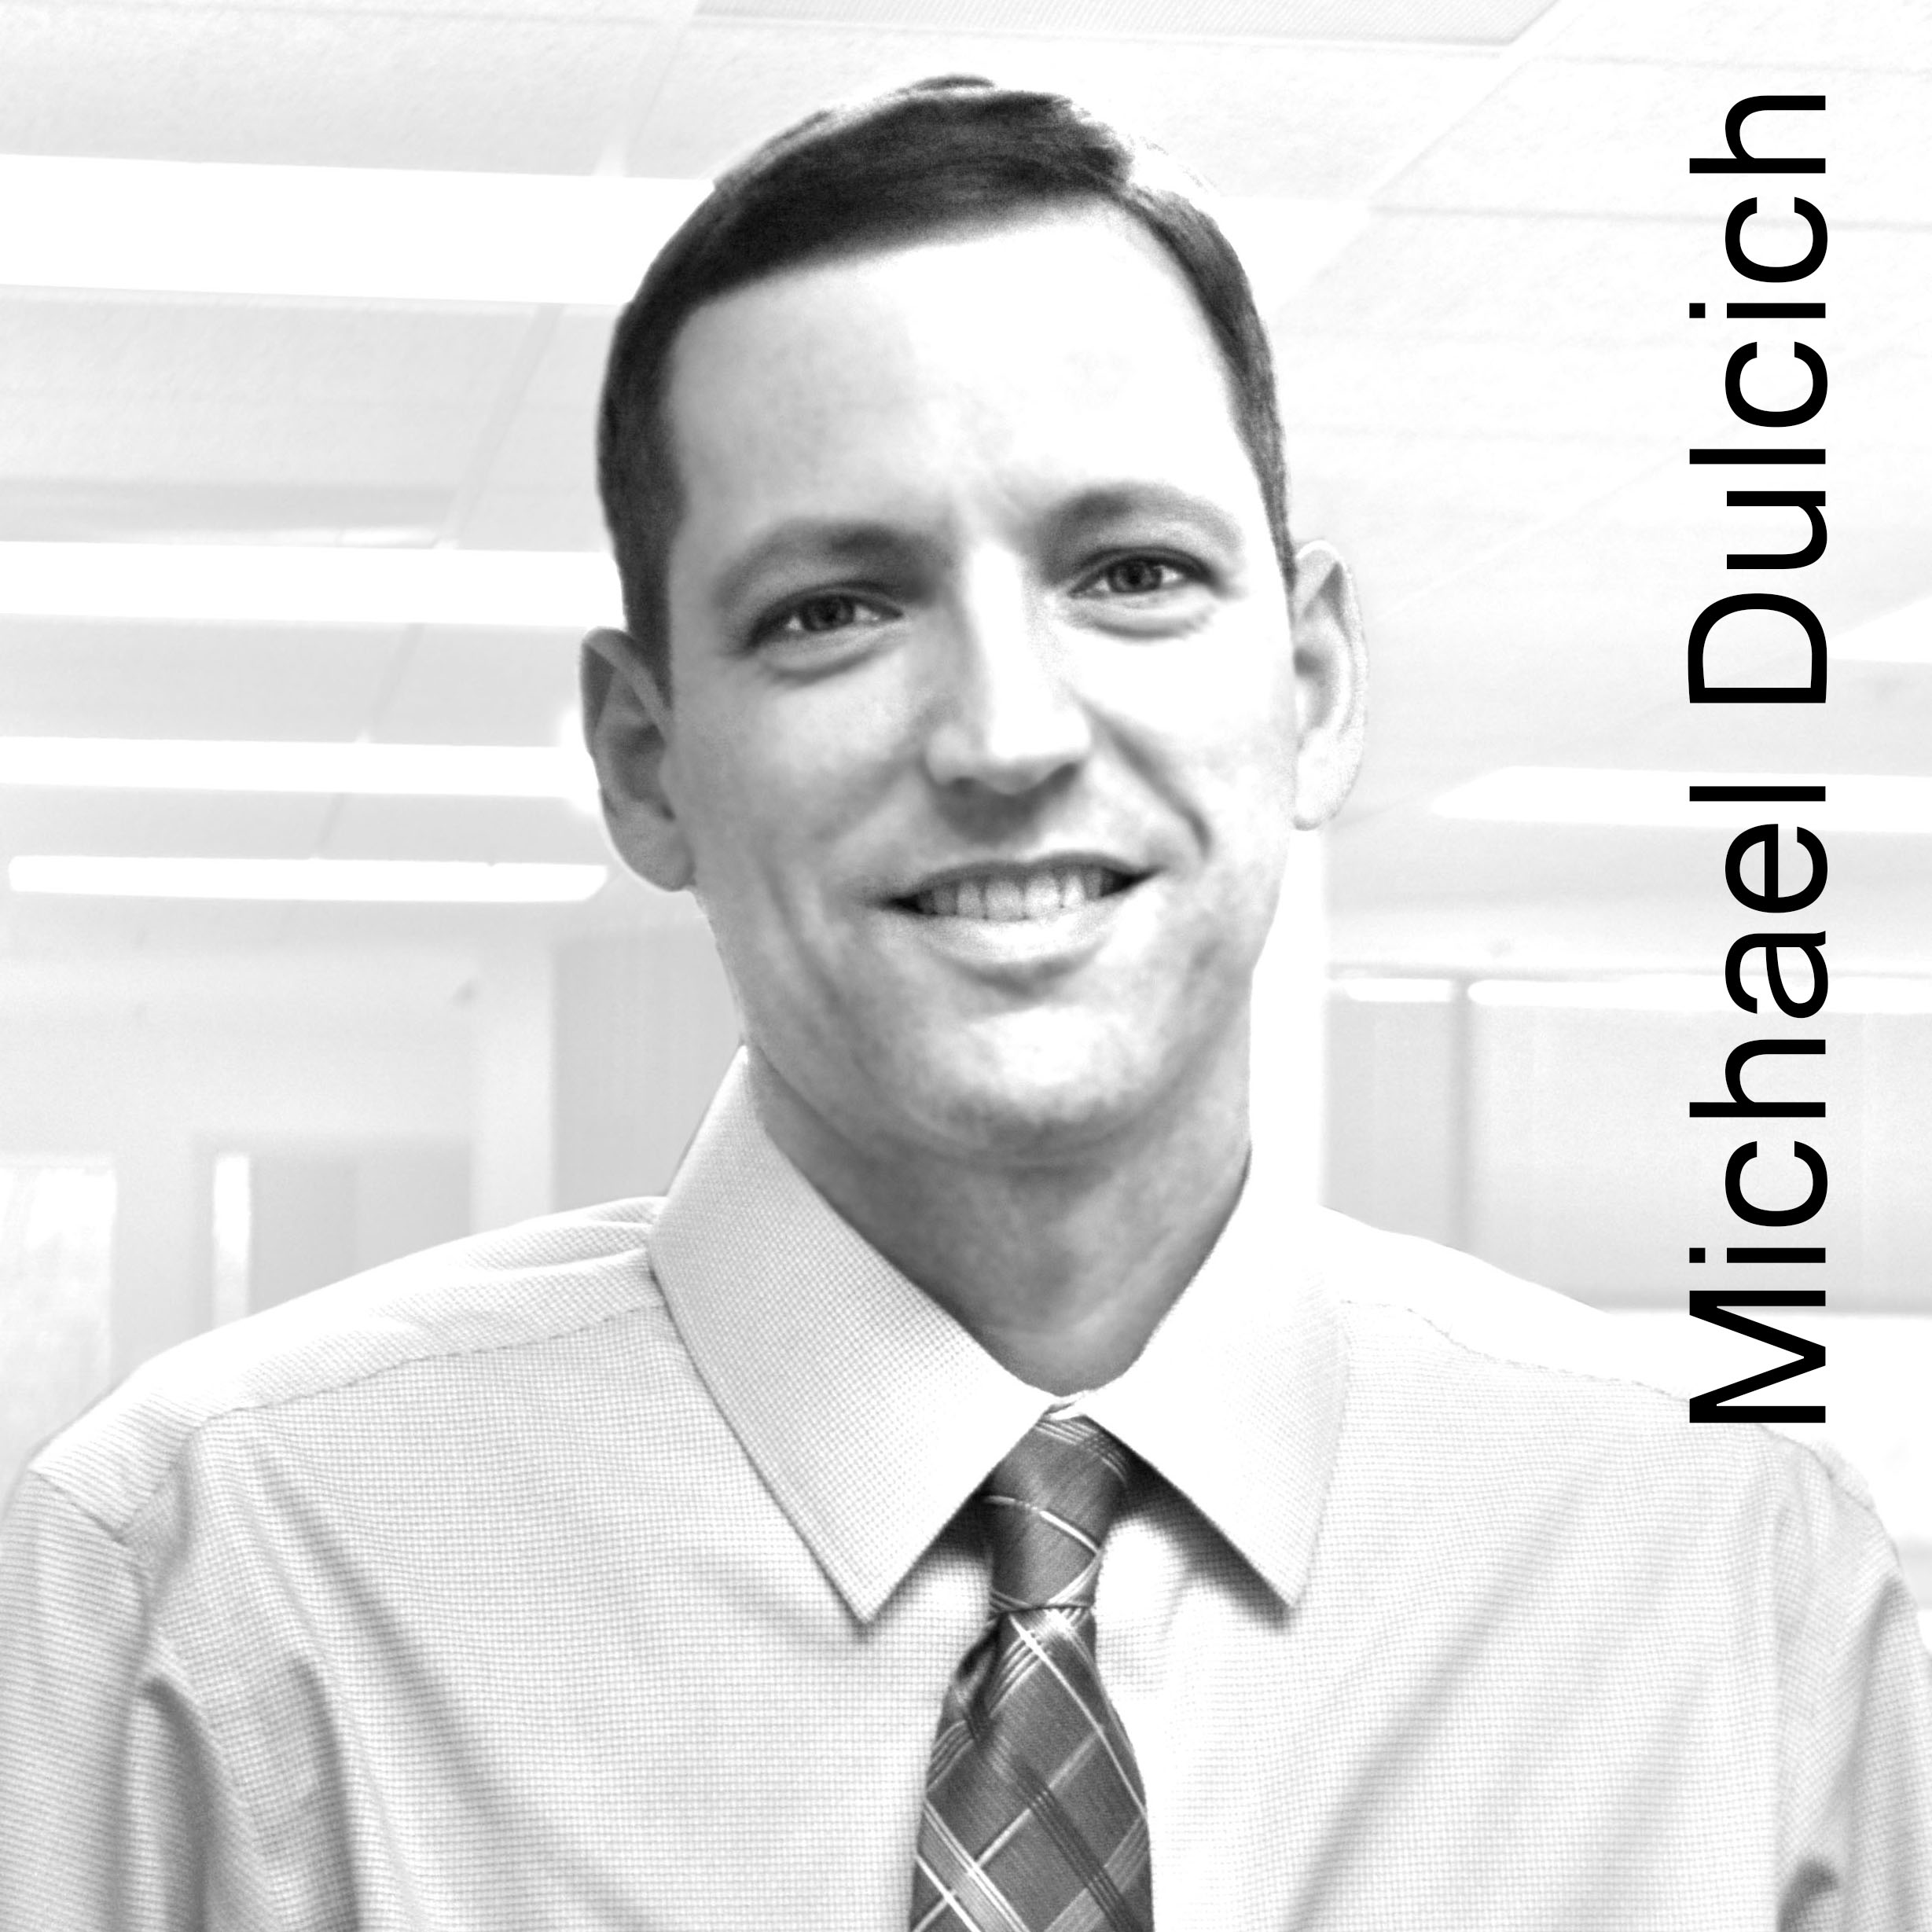 michael_dulcich_square_copy4.jpg